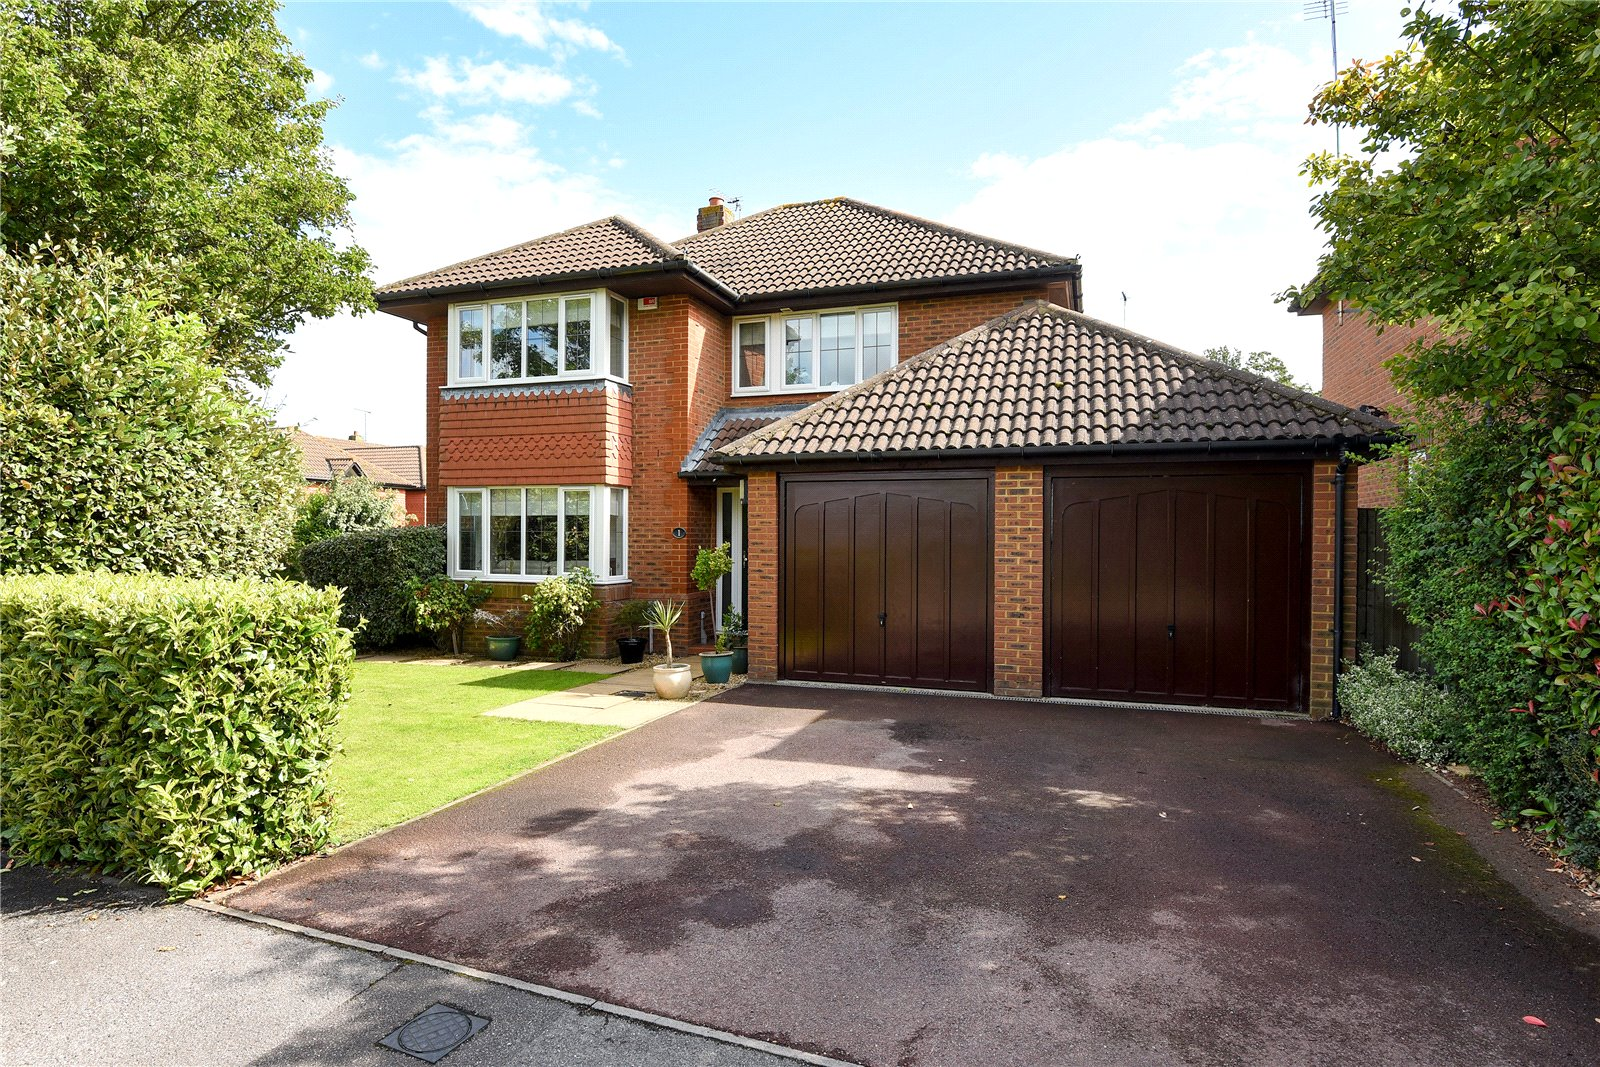 4 Bedrooms Detached House for sale in Derbyshire Green, Warfield, Berkshire, RG42